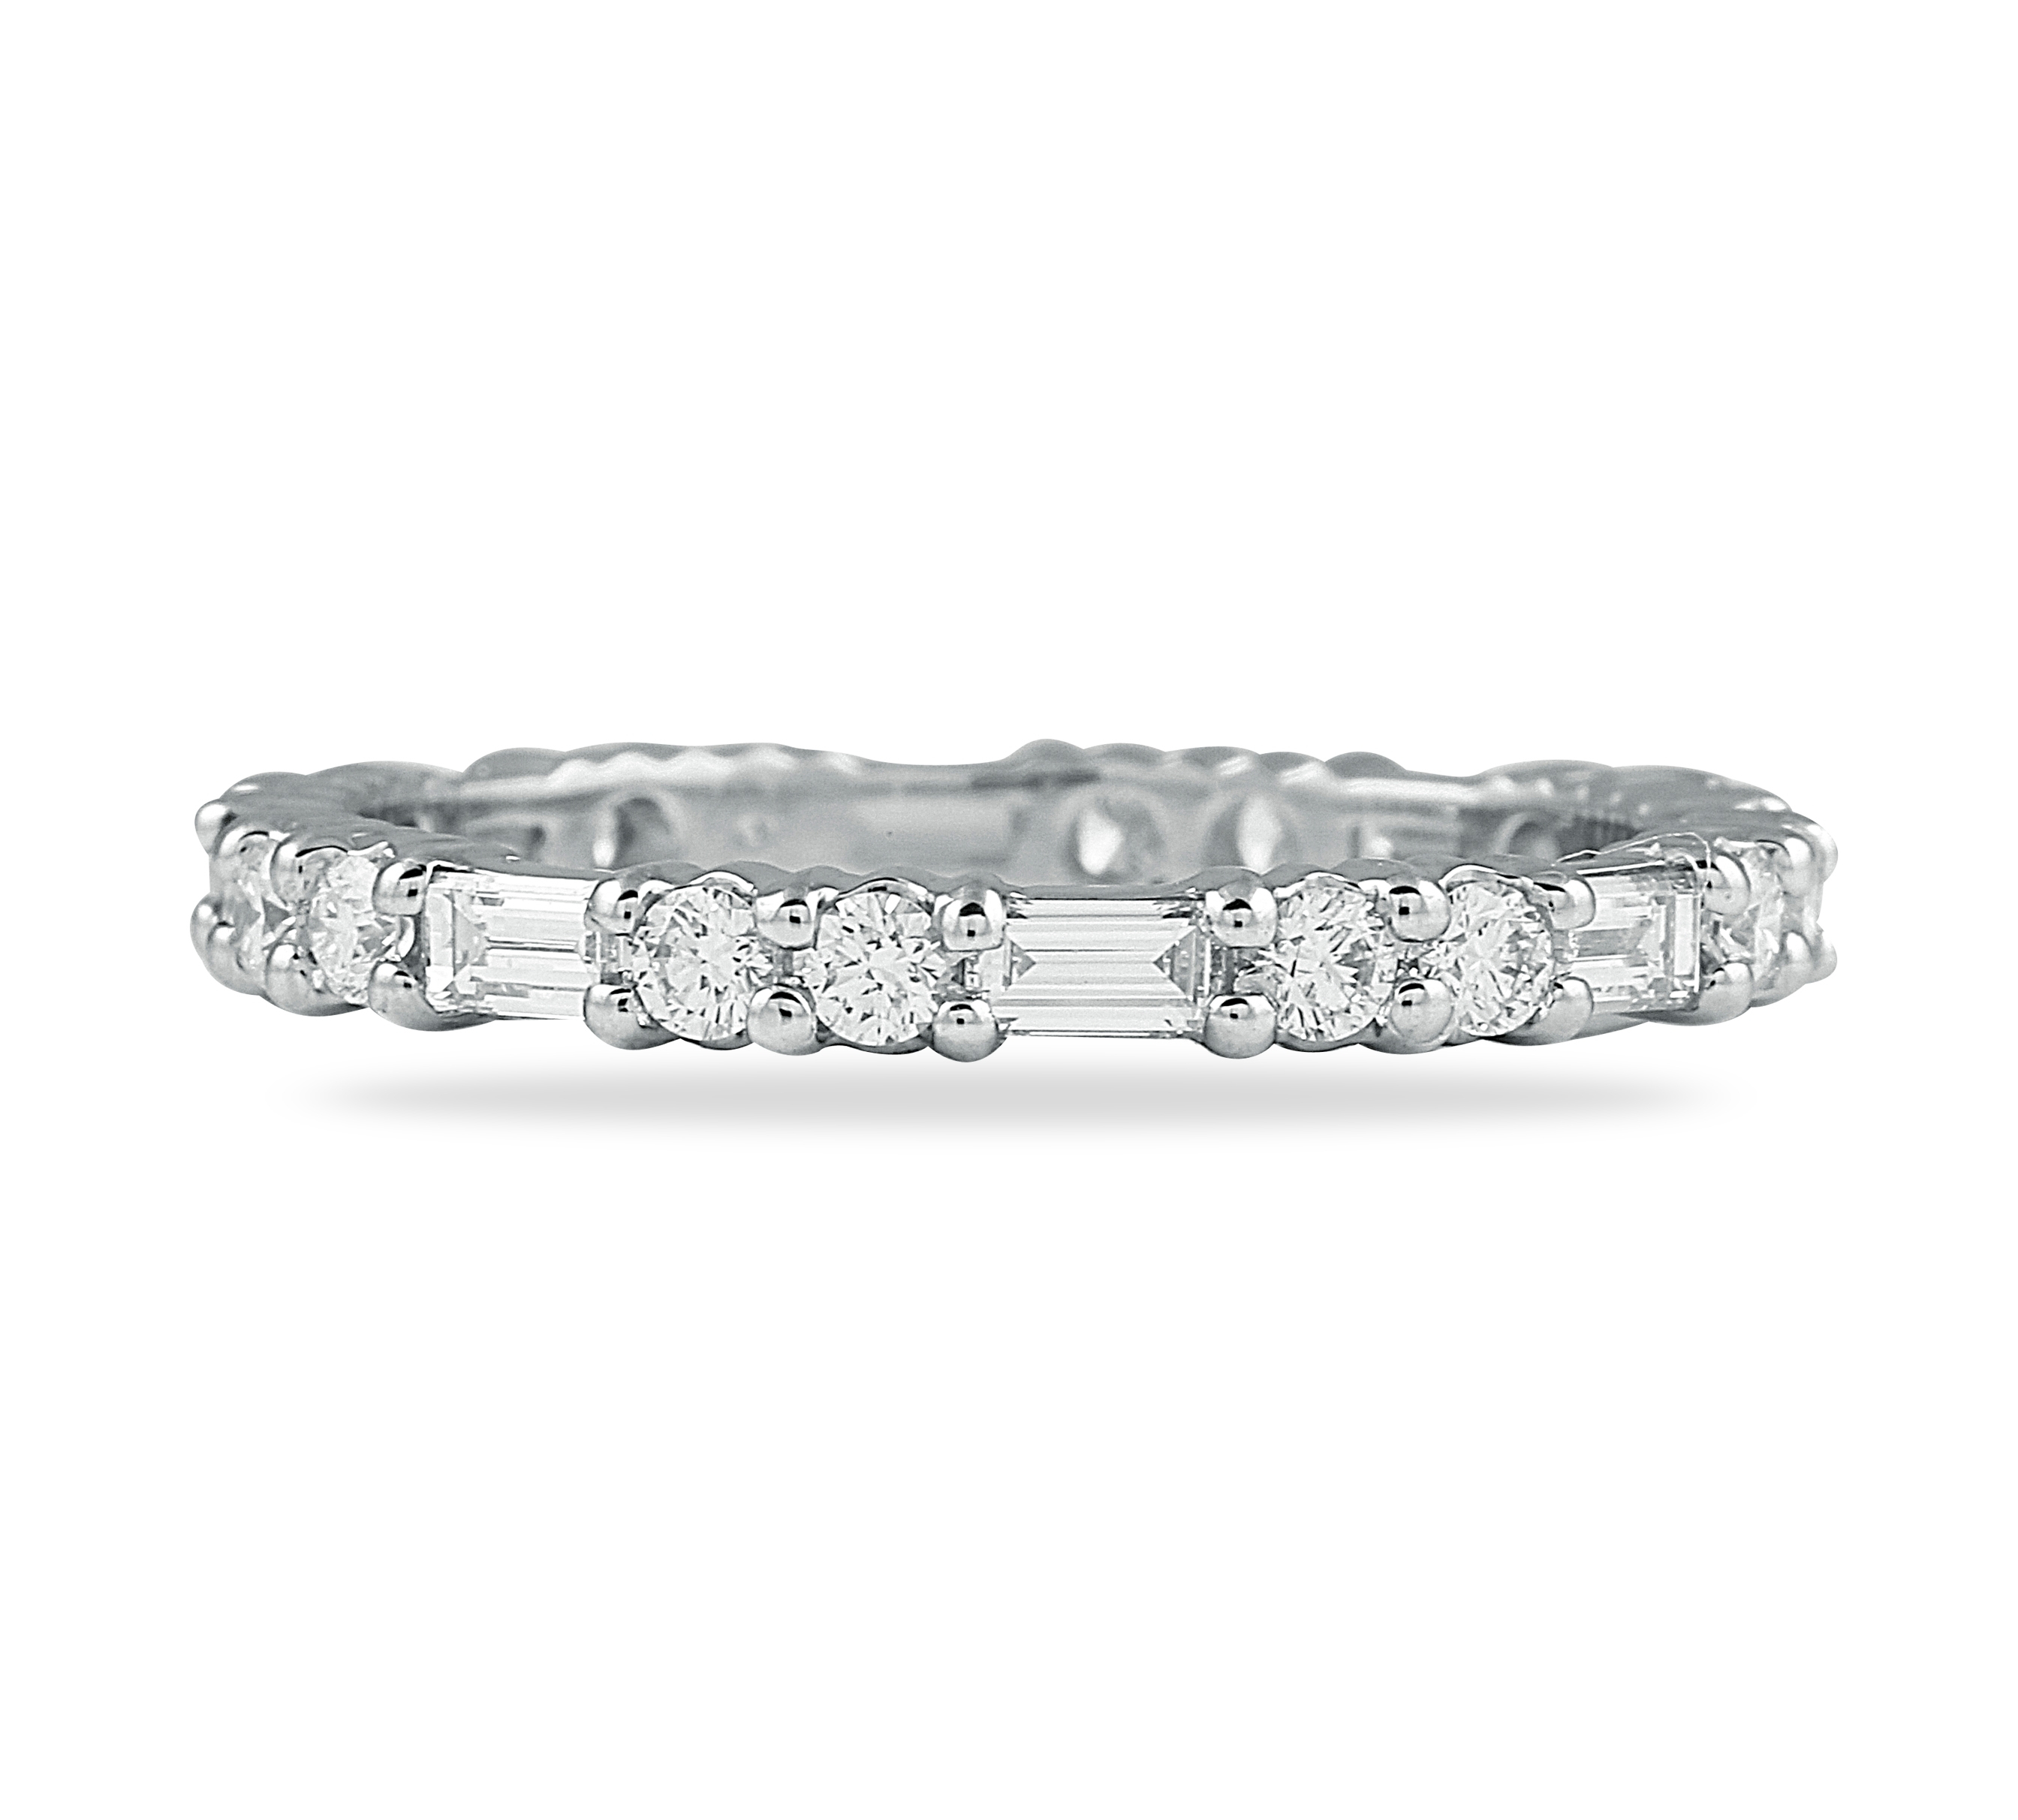 87 Ct Round And Baguette Diamond Shared Prong Eternity Band Within Most Current Baguette And Round Diamond Alternating Multi Row Anniversary Bands In White Gold (View 9 of 25)